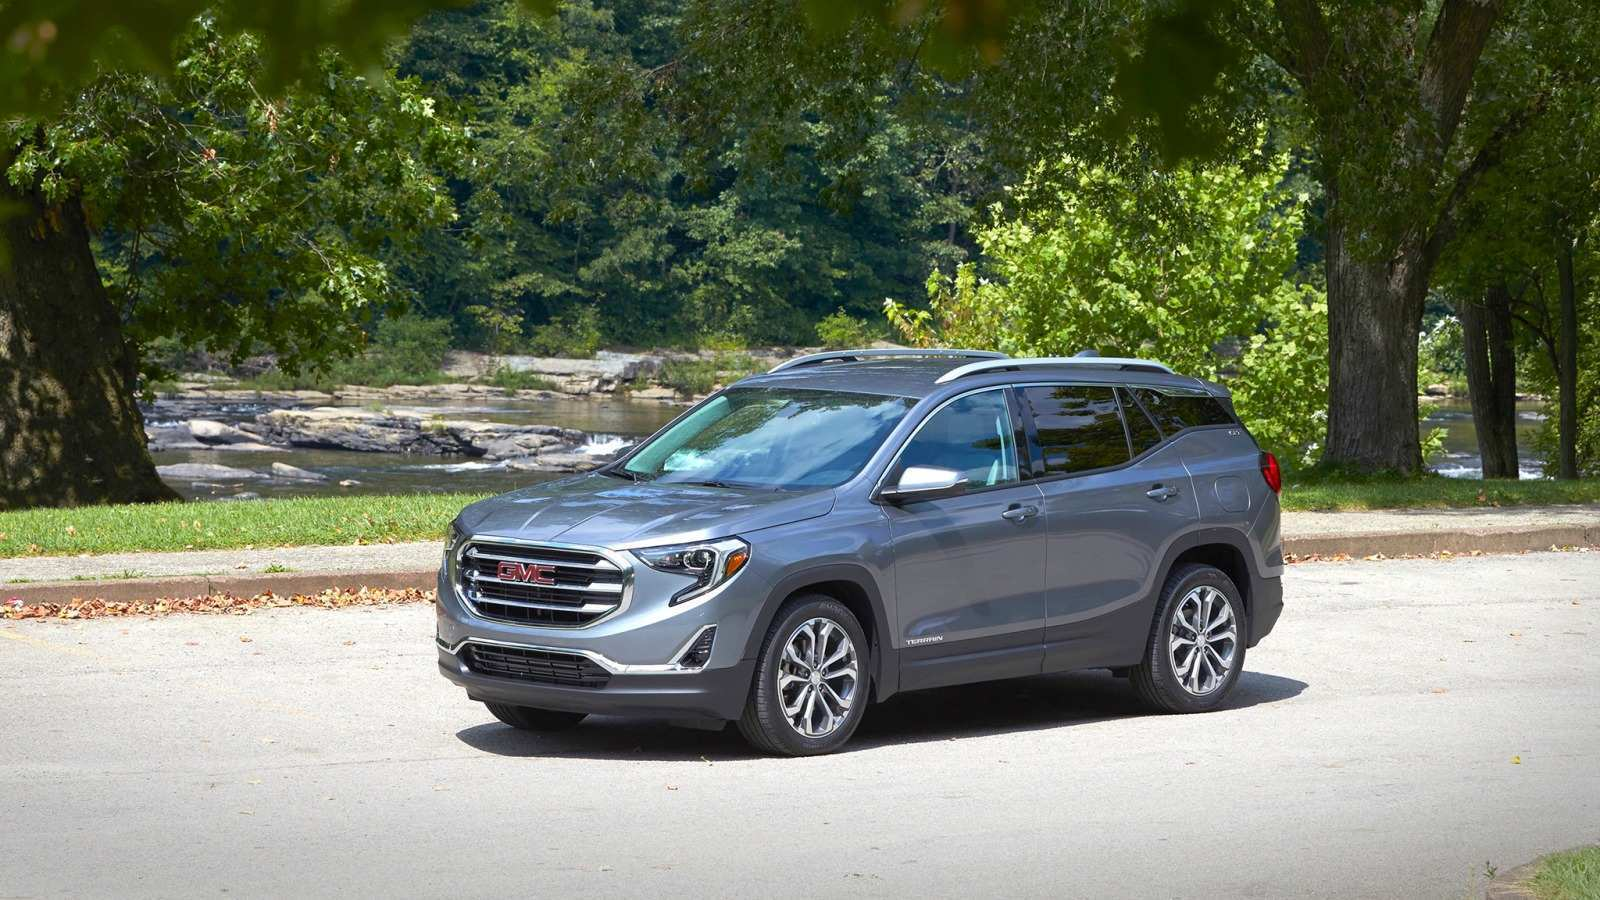 53 Best Review Gmc 2019 Terrain Colors Review Specs And Release Date Wallpaper with Gmc 2019 Terrain Colors Review Specs And Release Date